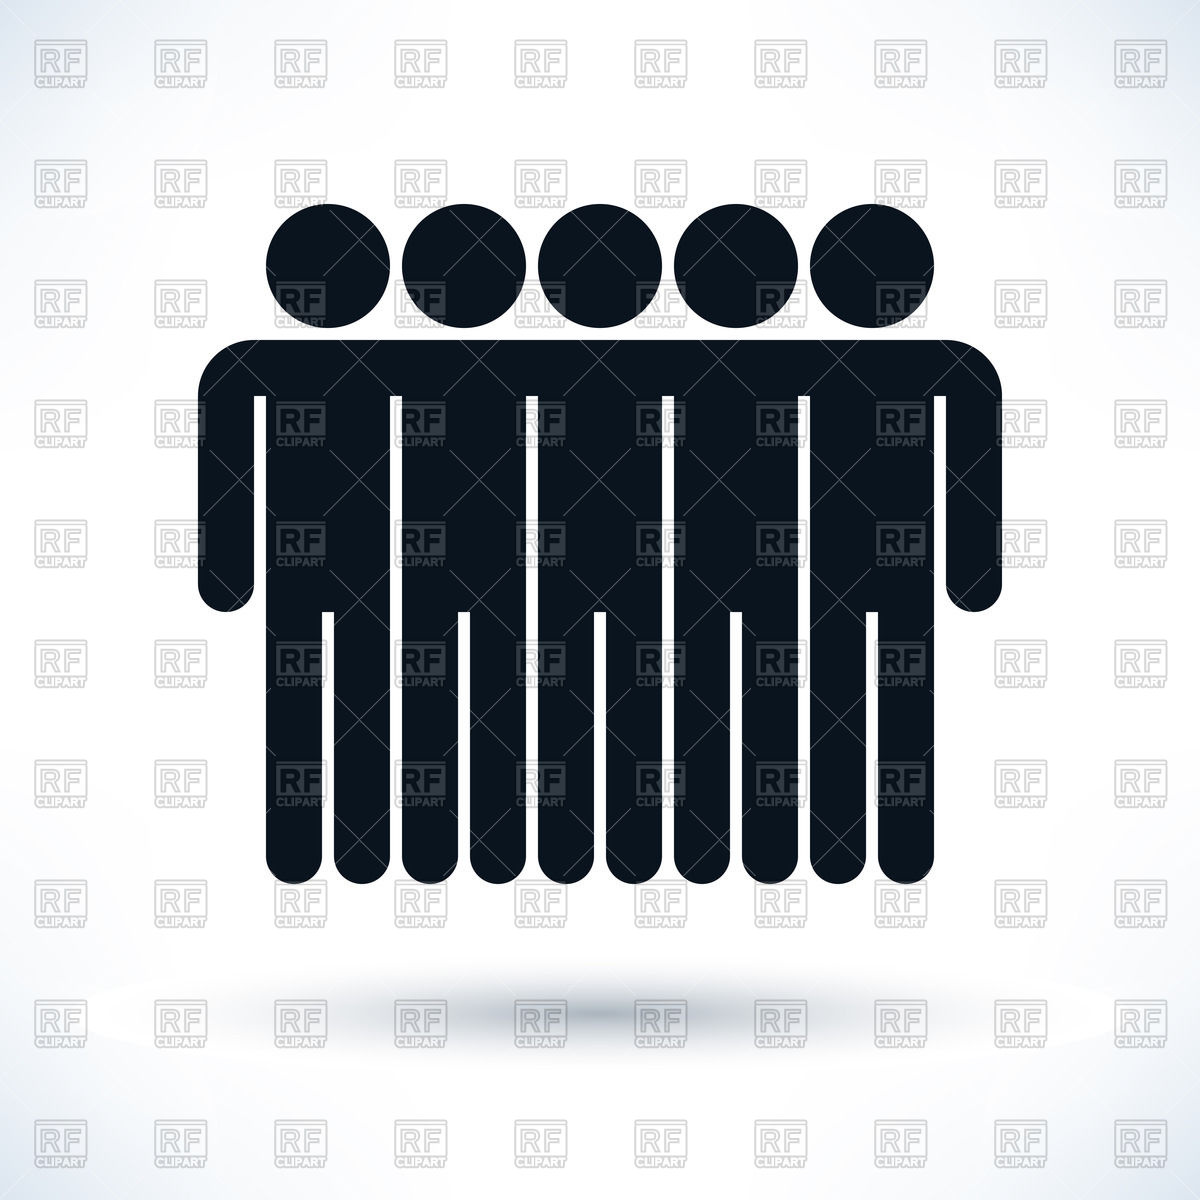 Row of people clipart picture royalty free Unity team - row of people, simple pictogram Vector Image #48467 ... picture royalty free